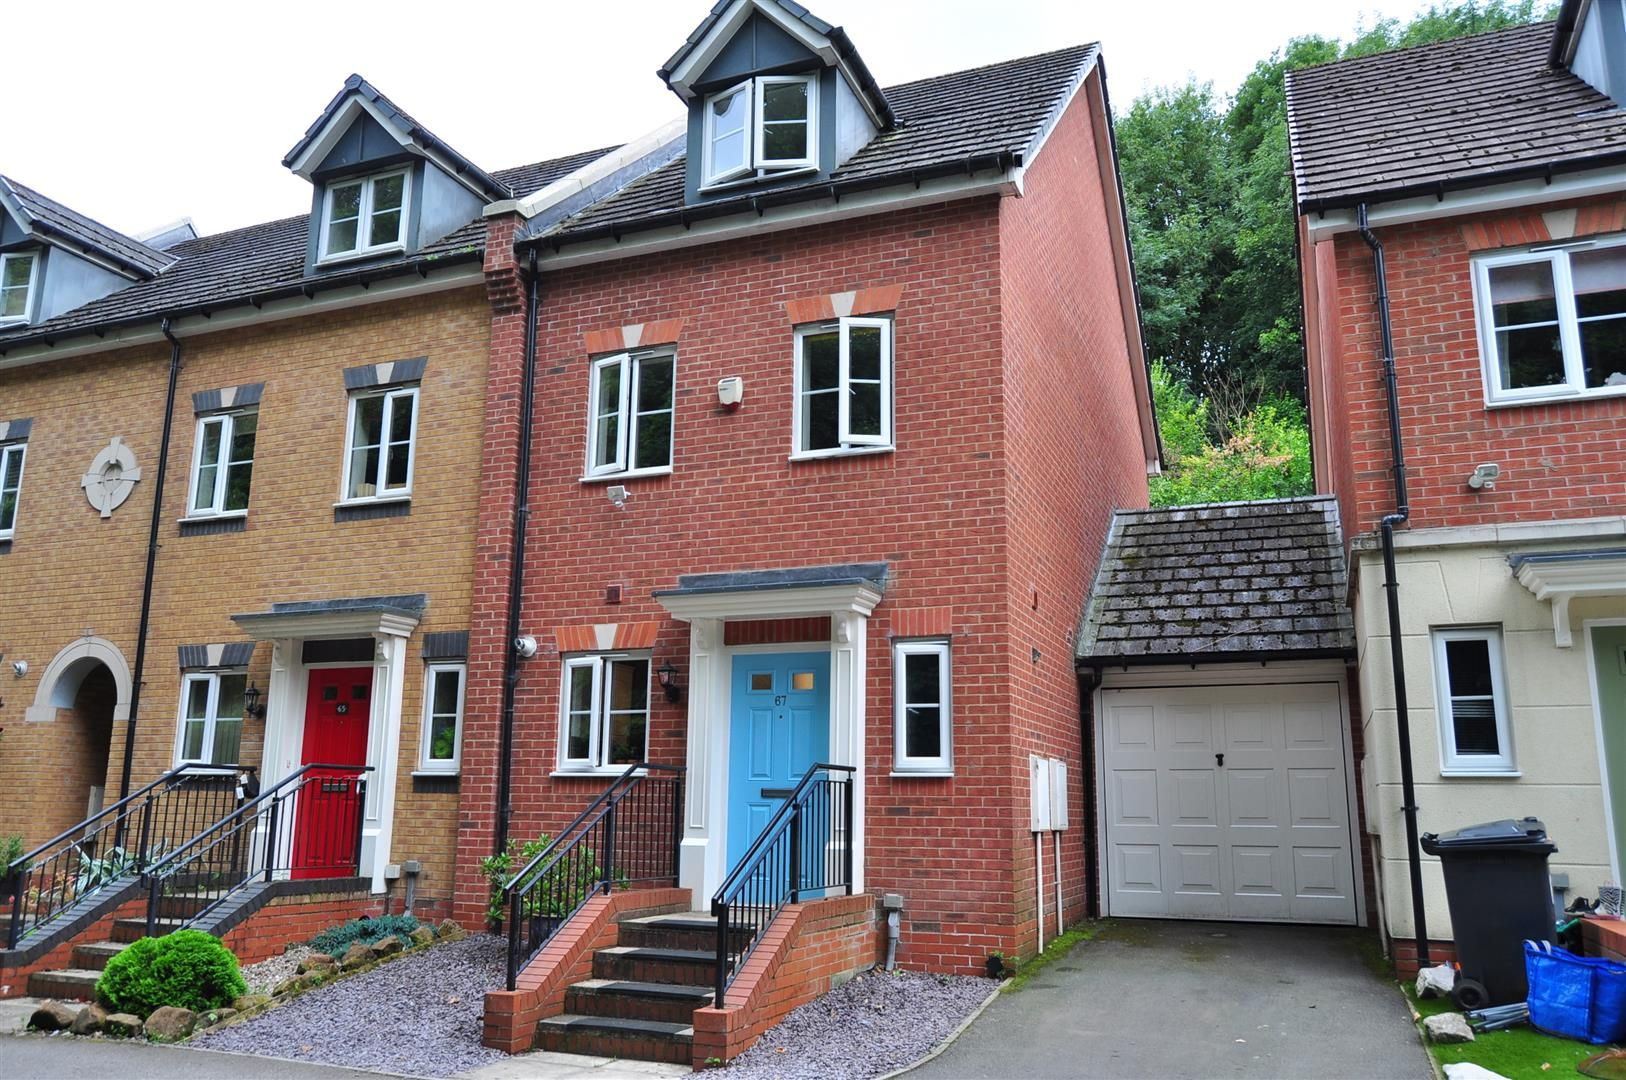 4 bed end-of-terrace for sale  - Property Image 20